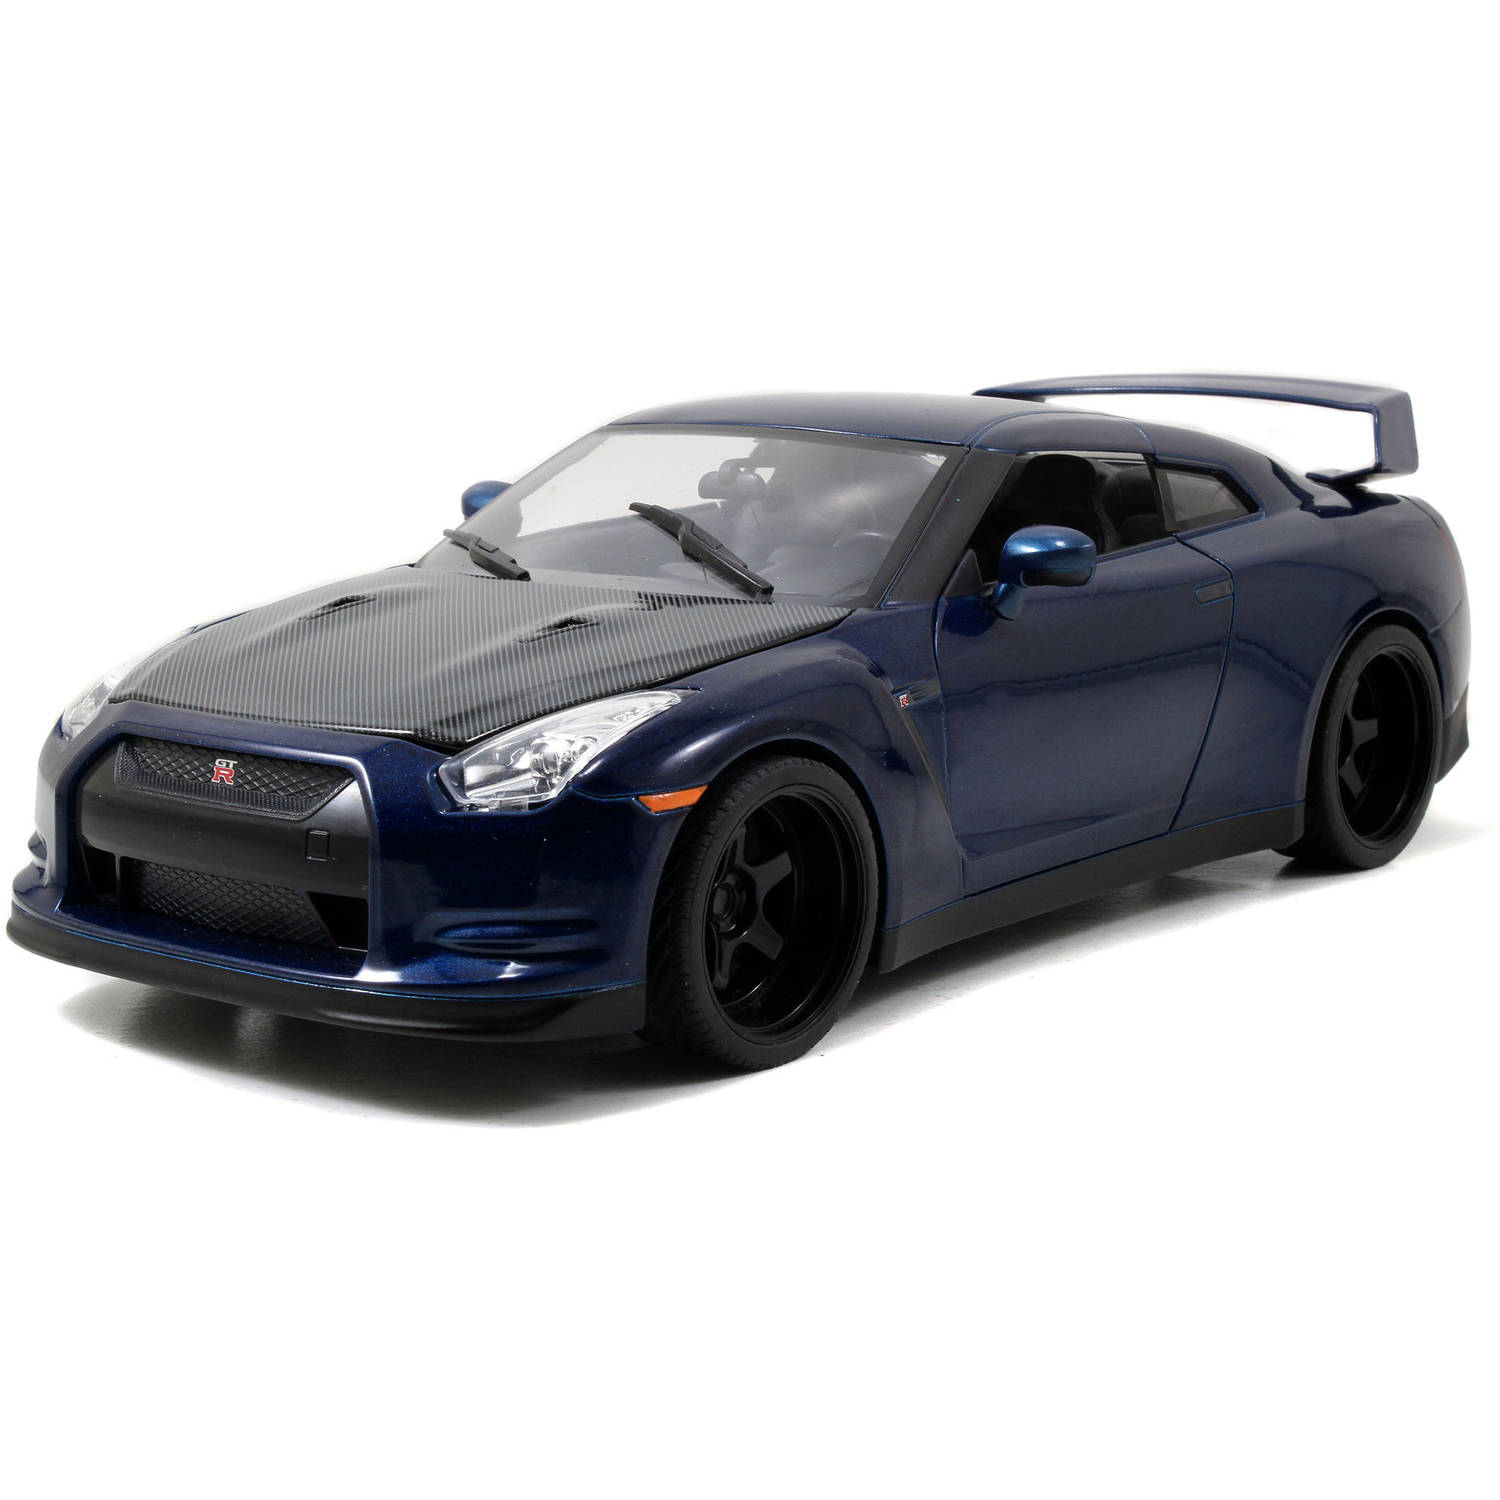 Jada Toys Fast and Furious 1 18 Scale Die Cast Nissan GT-R by Jada